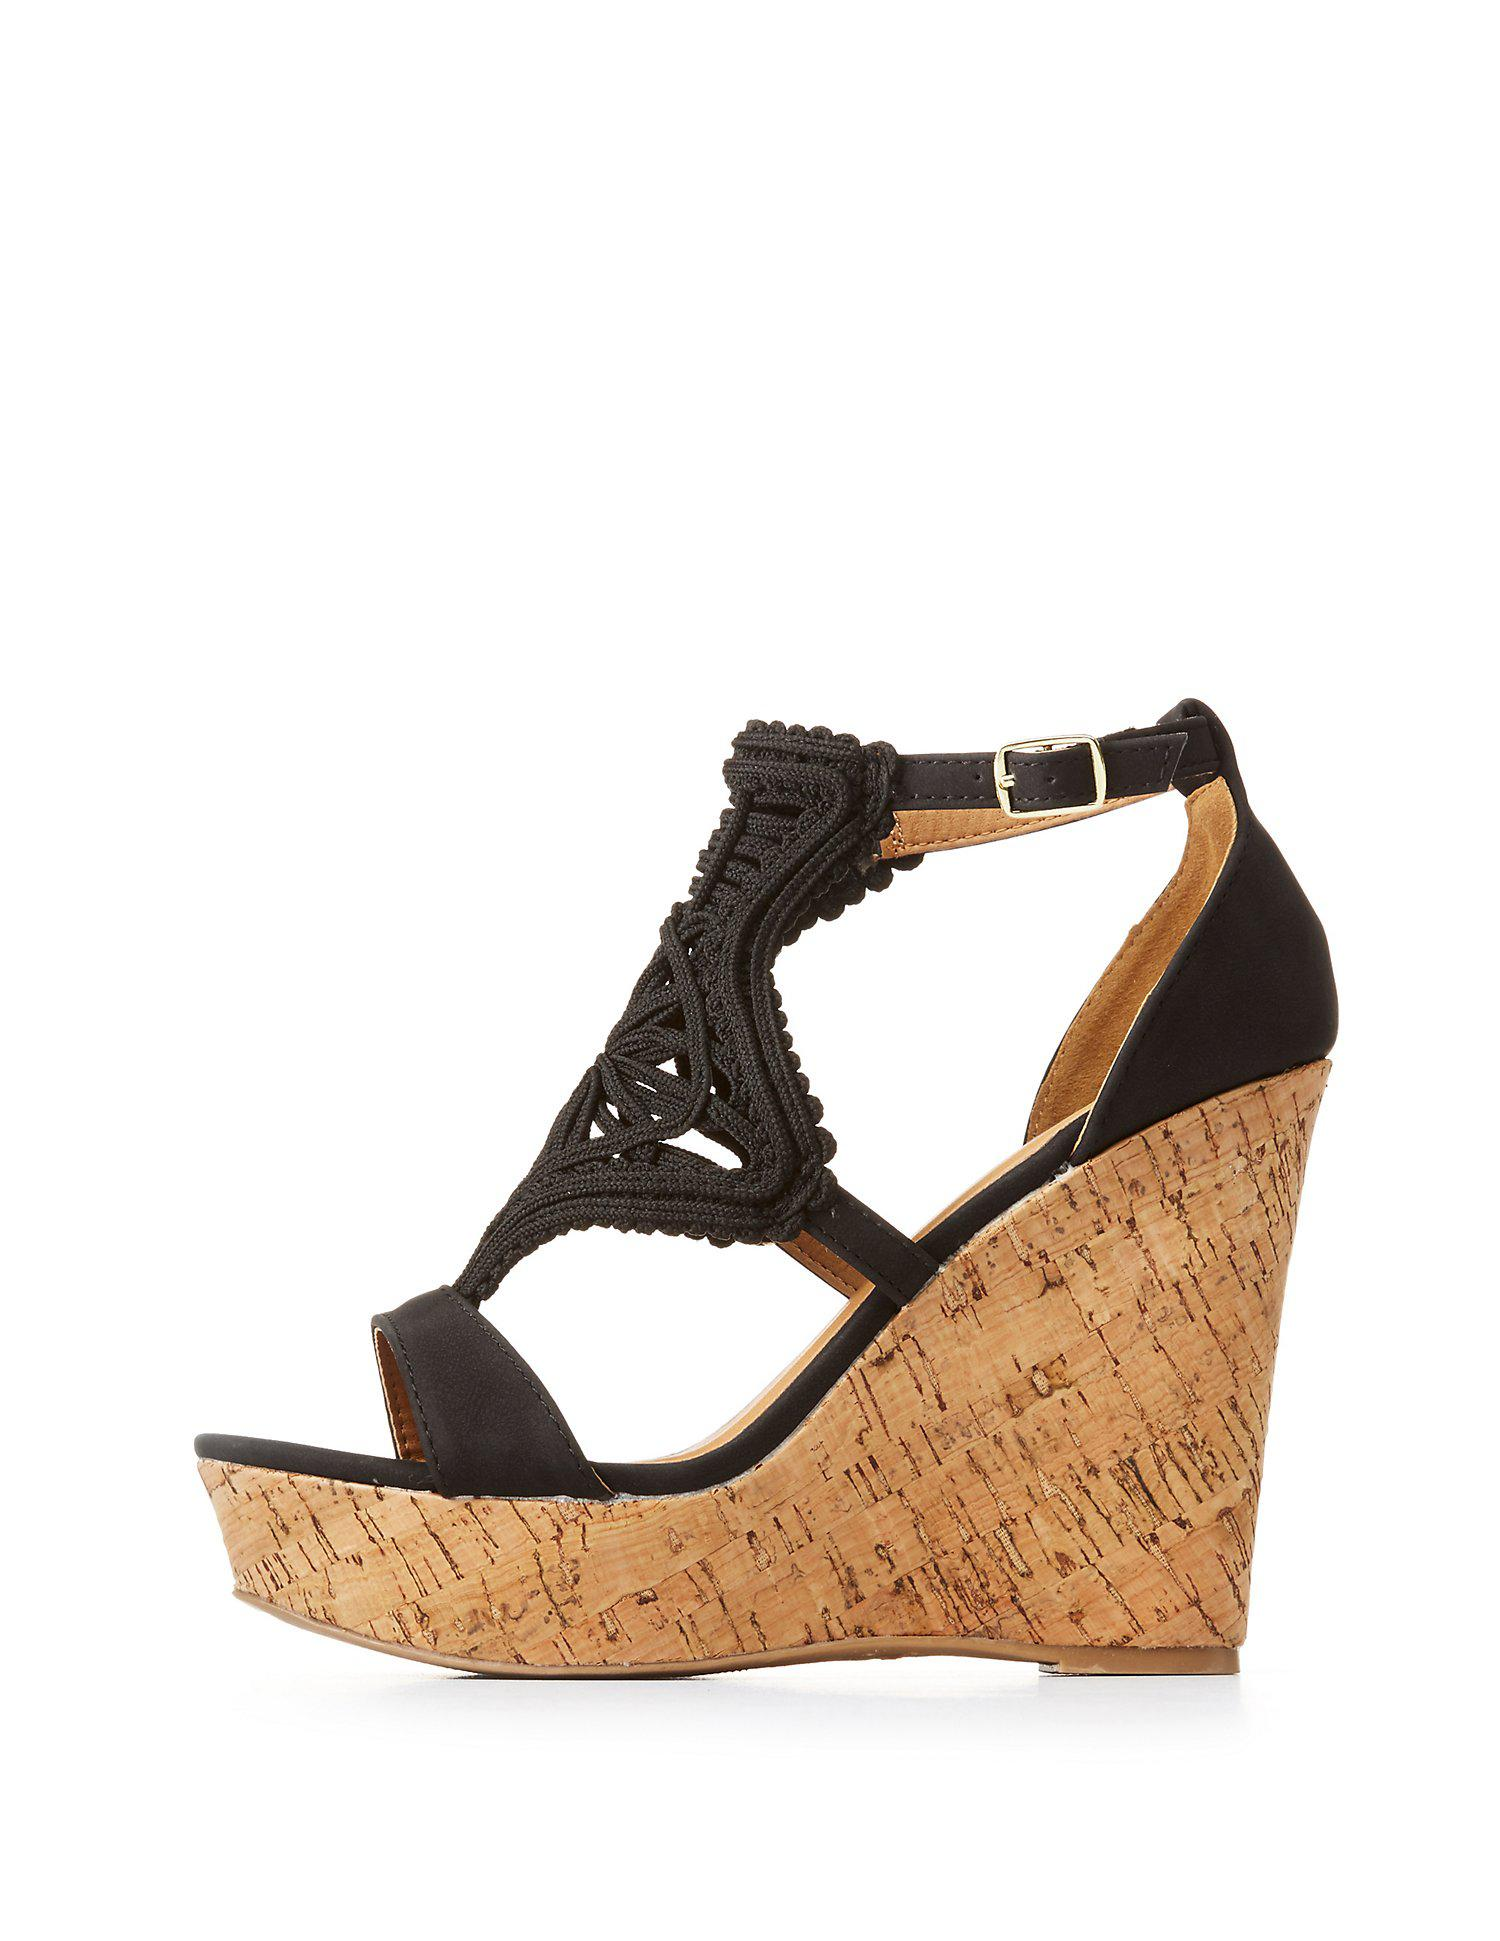 969849f91415 Lyst - Charlotte Russe Woven Cork Wedge Sandals in Black